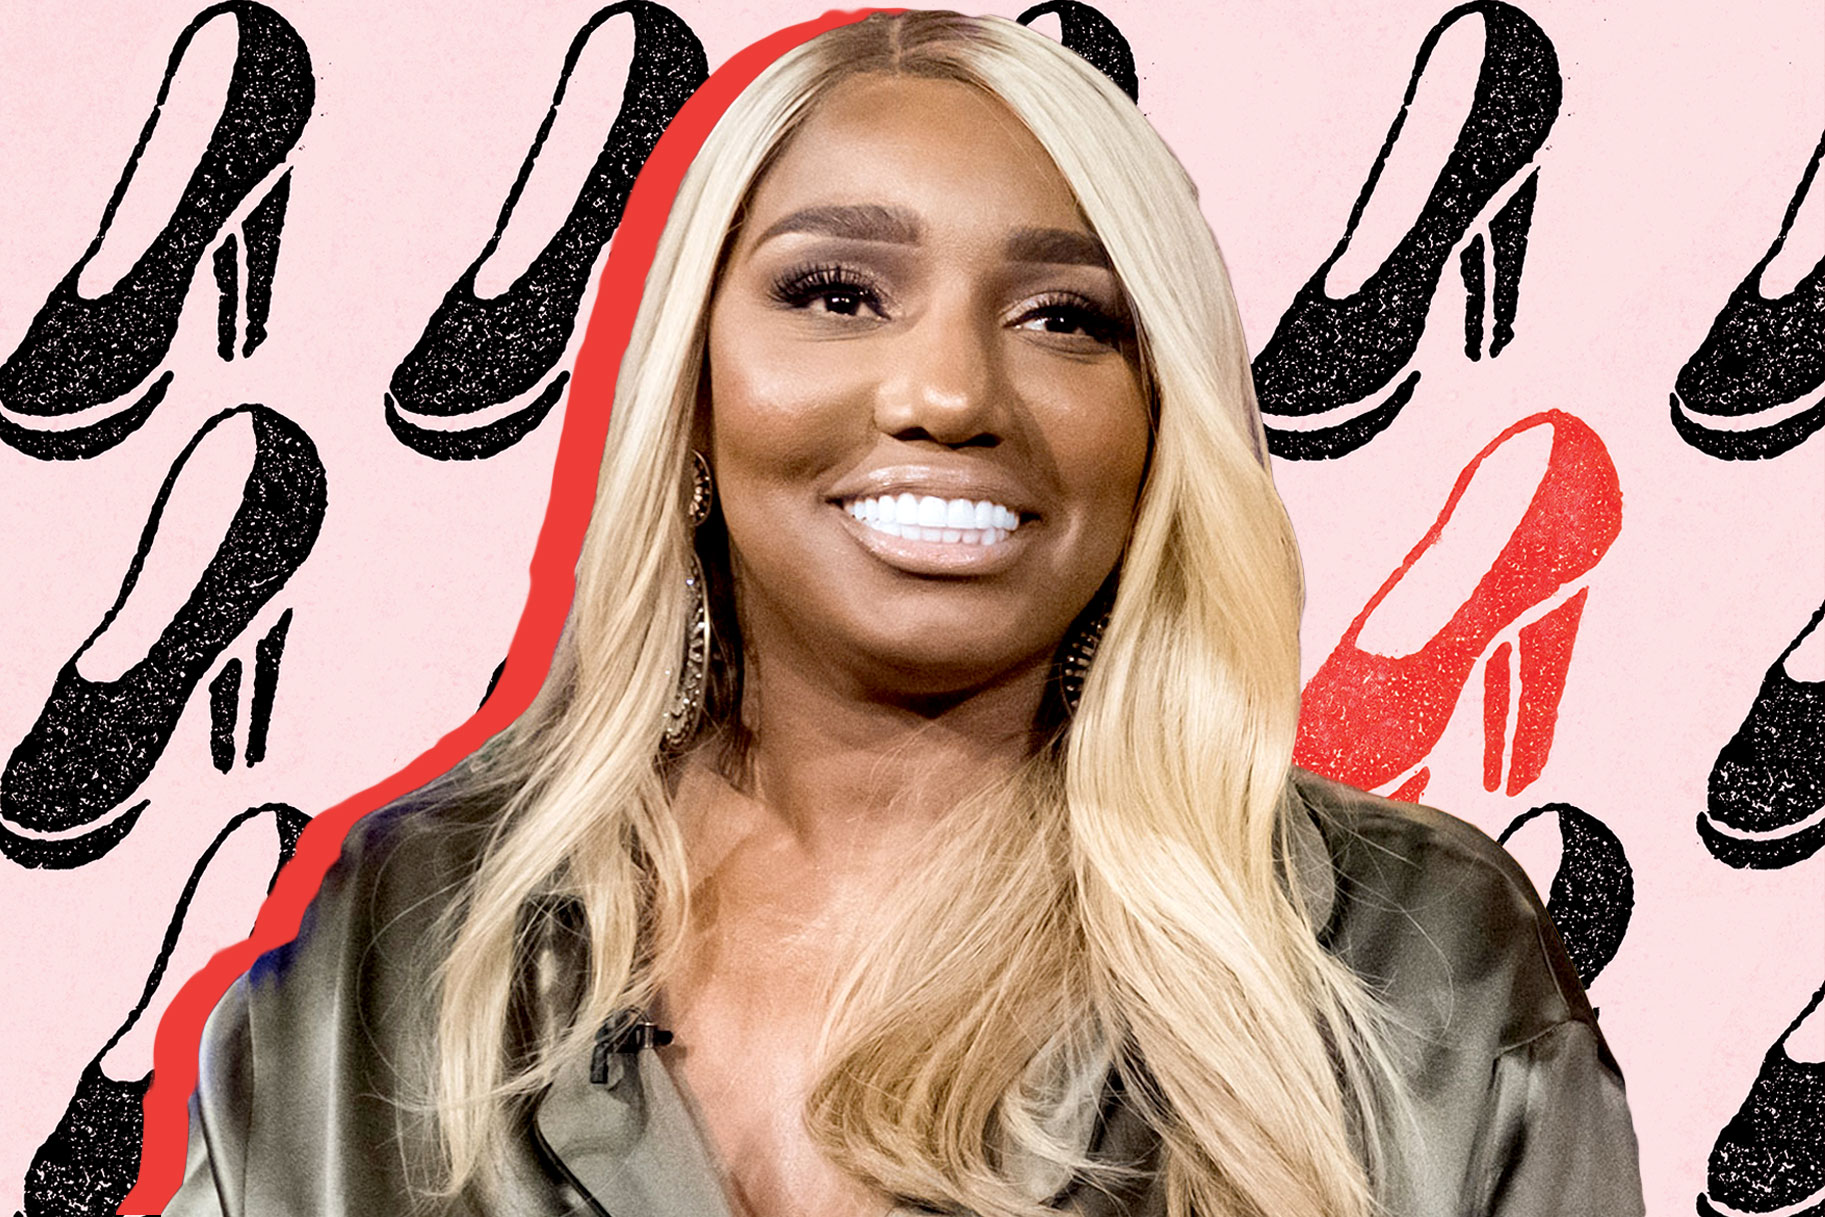 NeNe Leakes Is Reportedly The First Black Woman To Own A Business Inside MGM National Harbor - See Her Celebrating